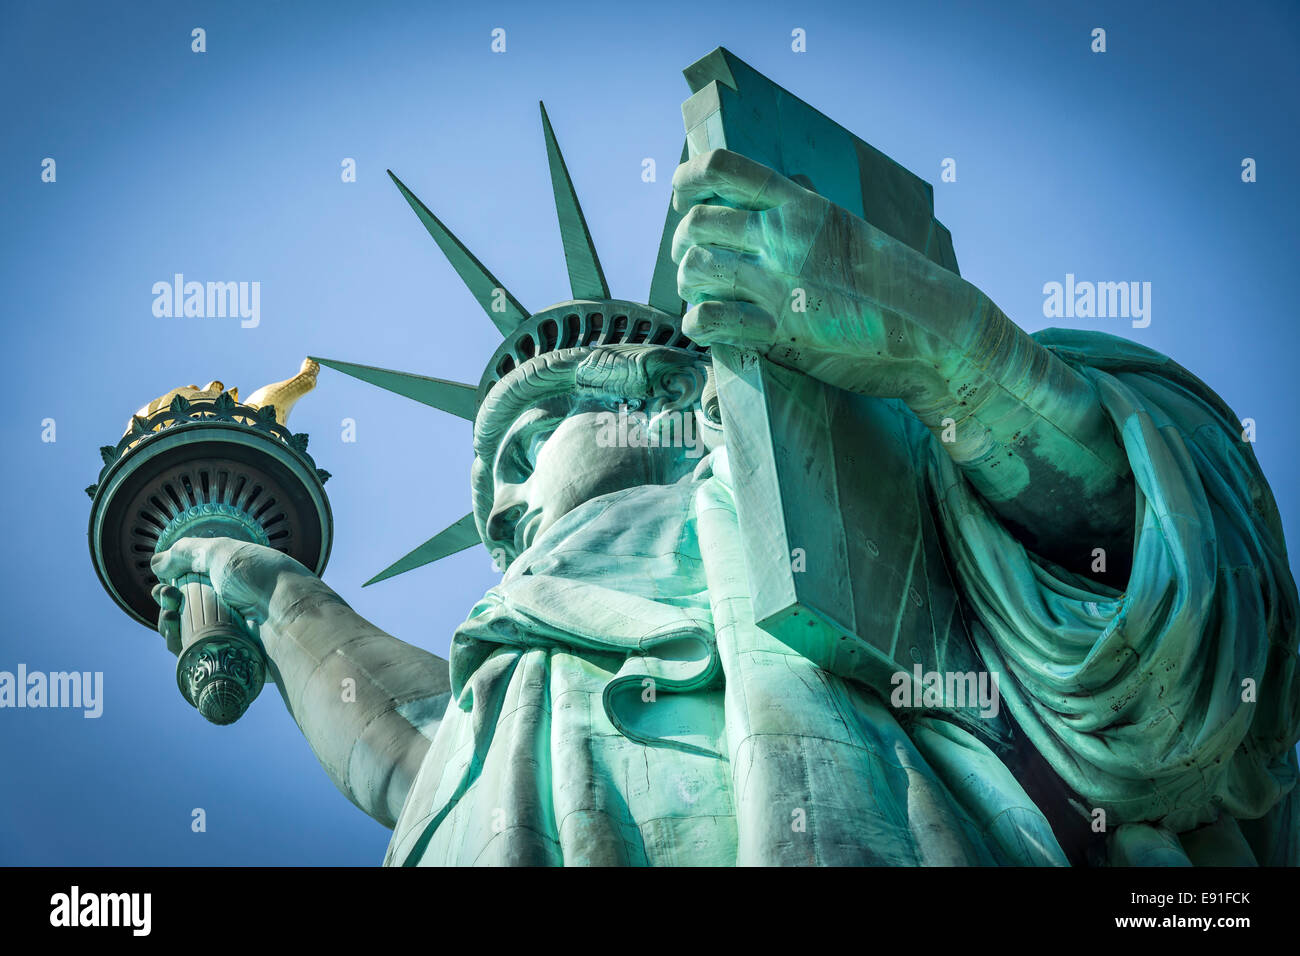 Statue de la liberté, New York Photo Stock